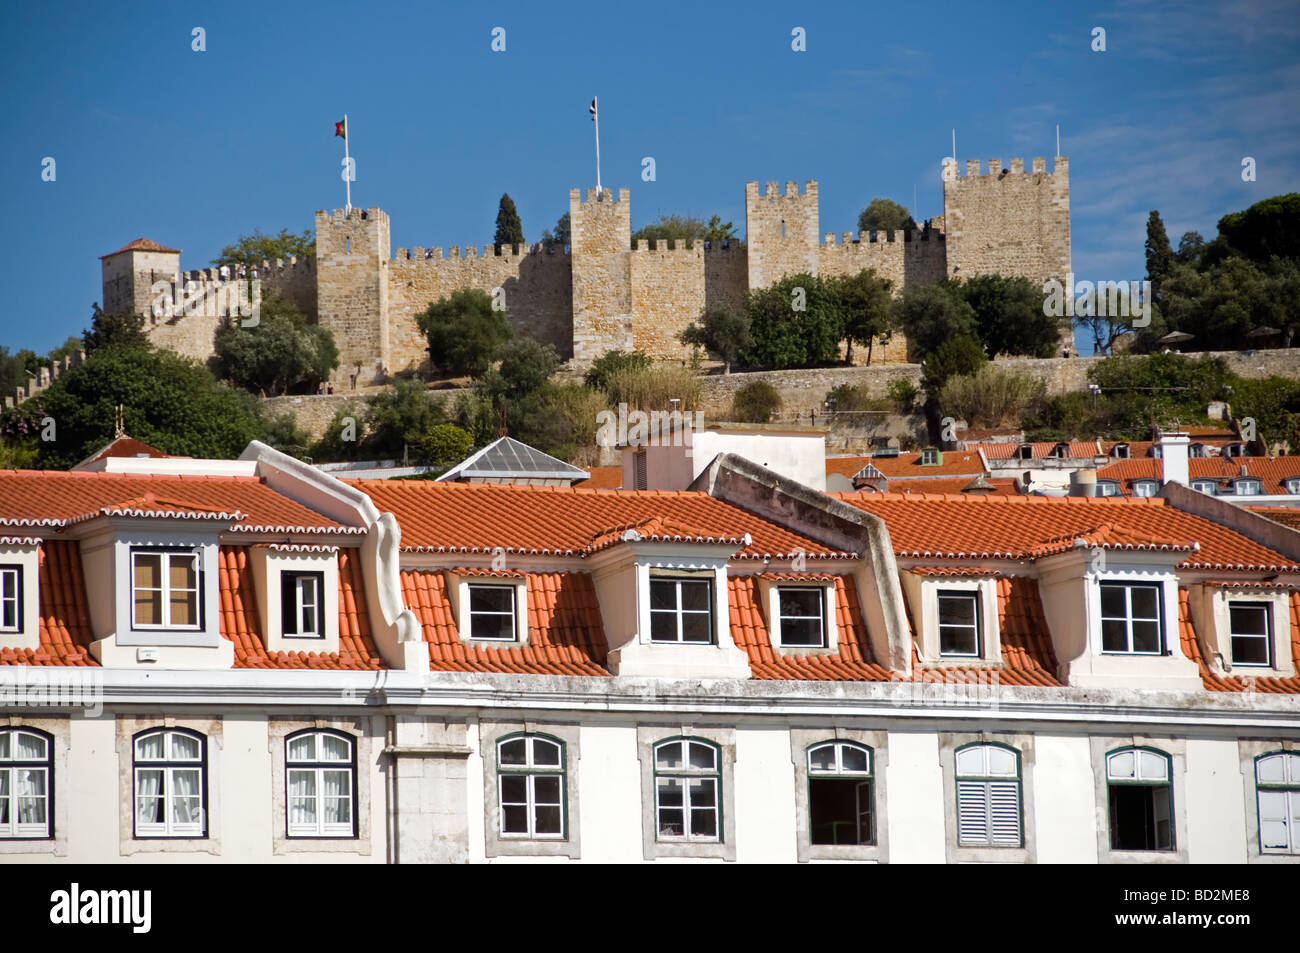 Saint George Castle and houses, Lisbon Portugal - Stock Image